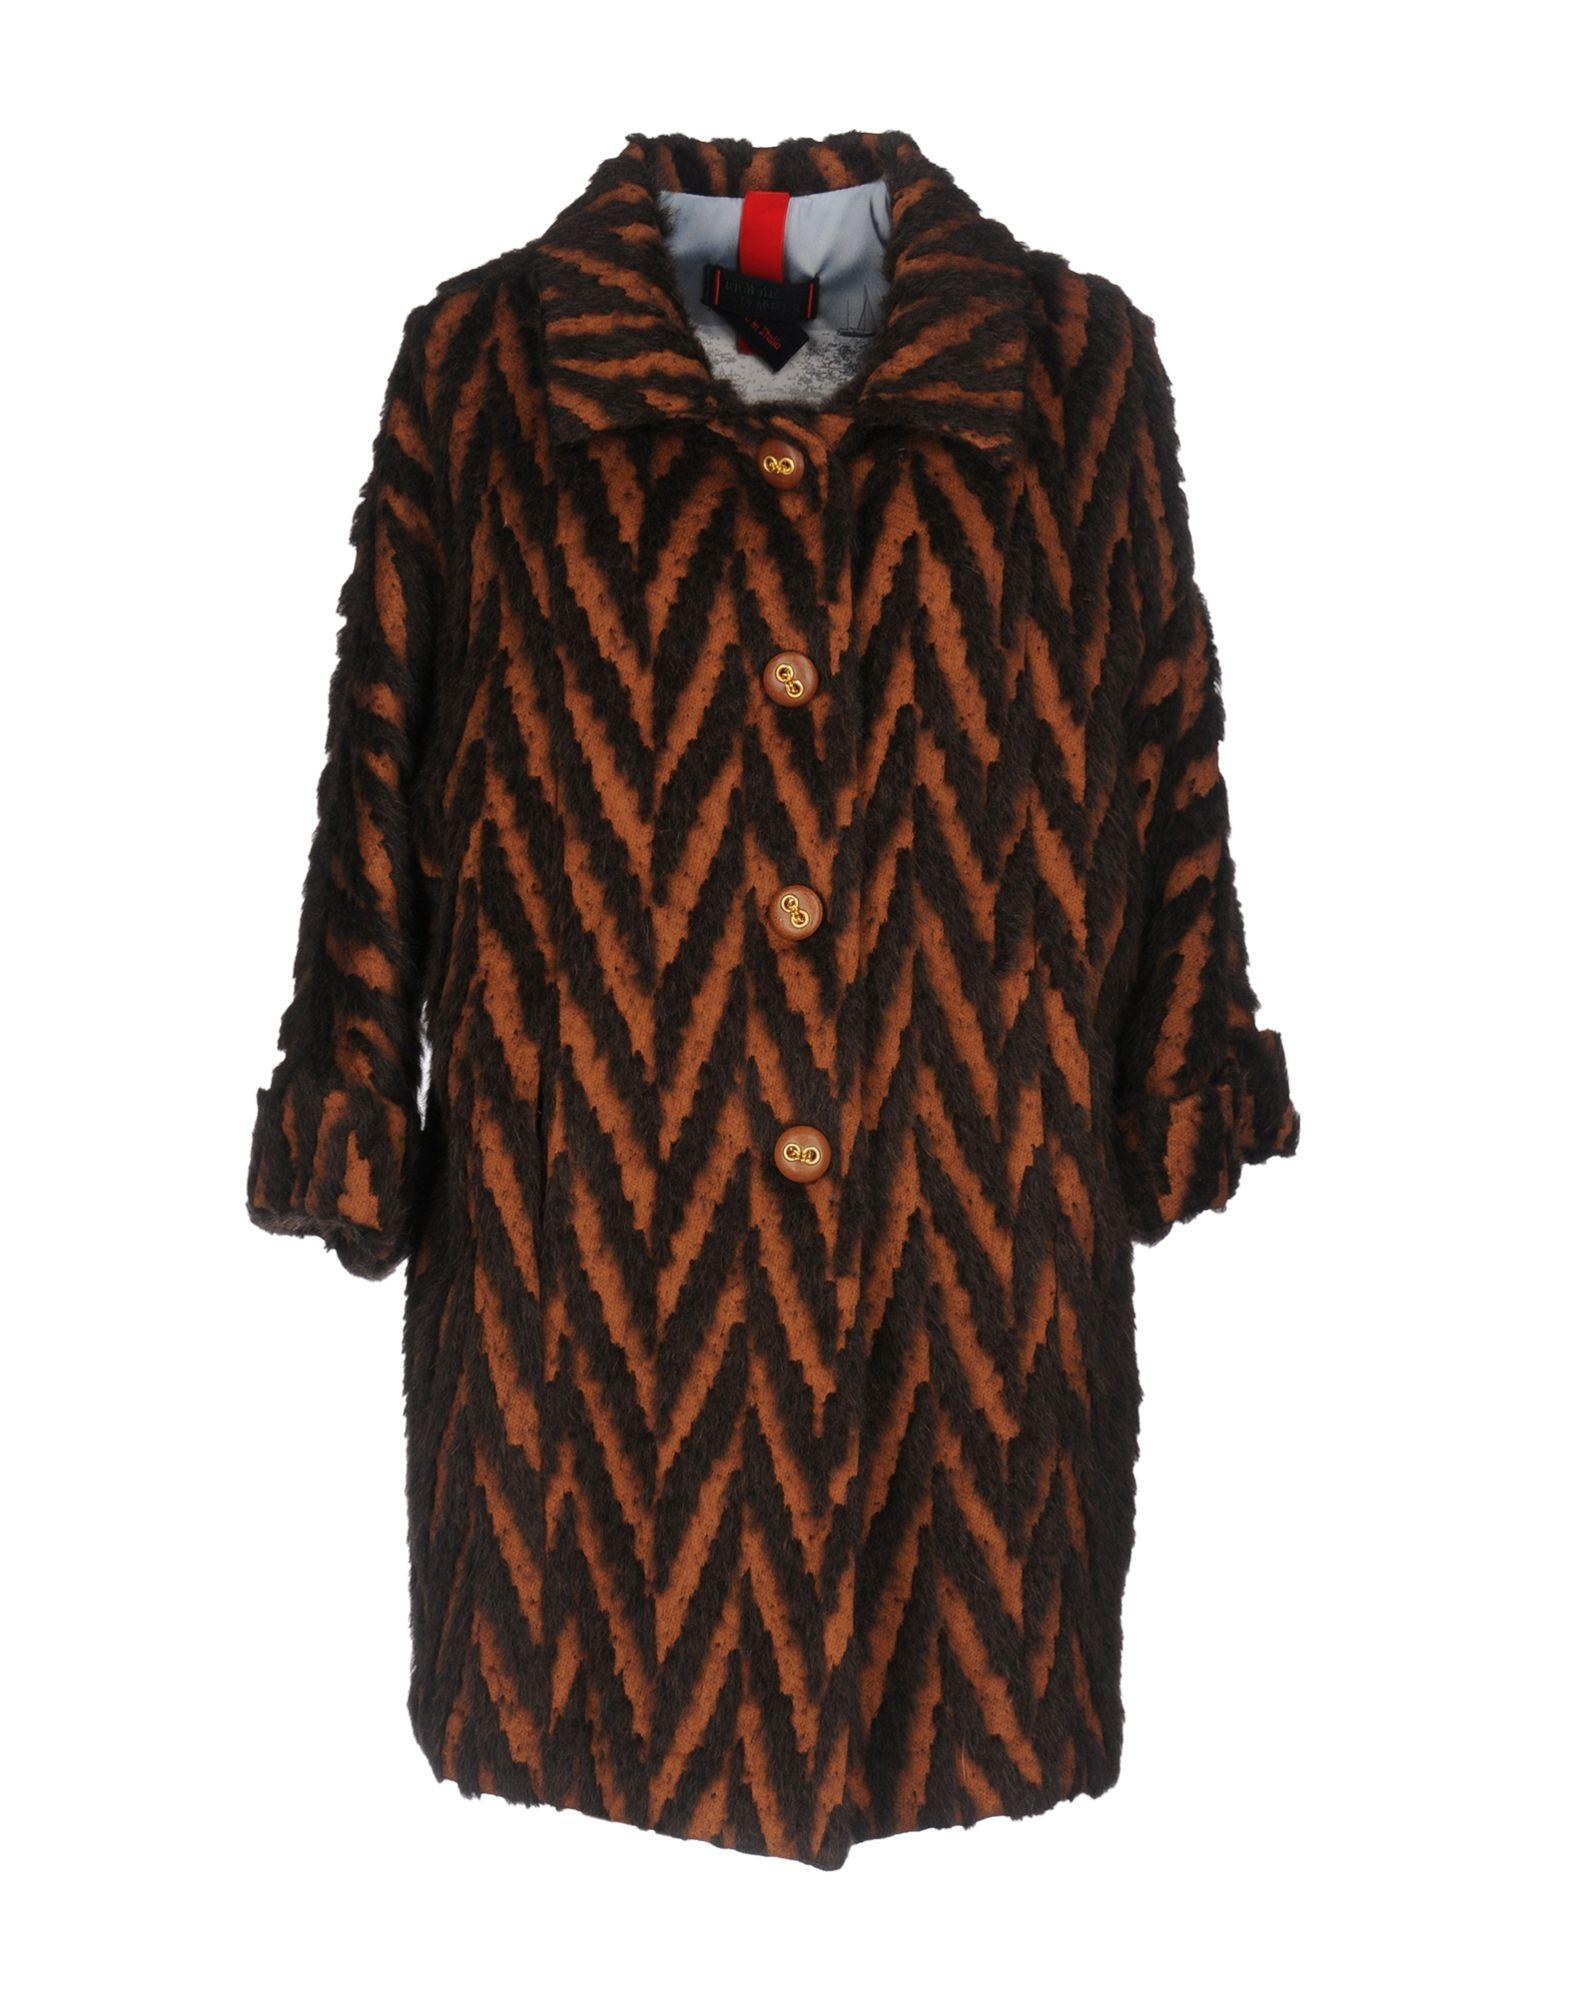 Femme By Michele Rossi Coats In Brown